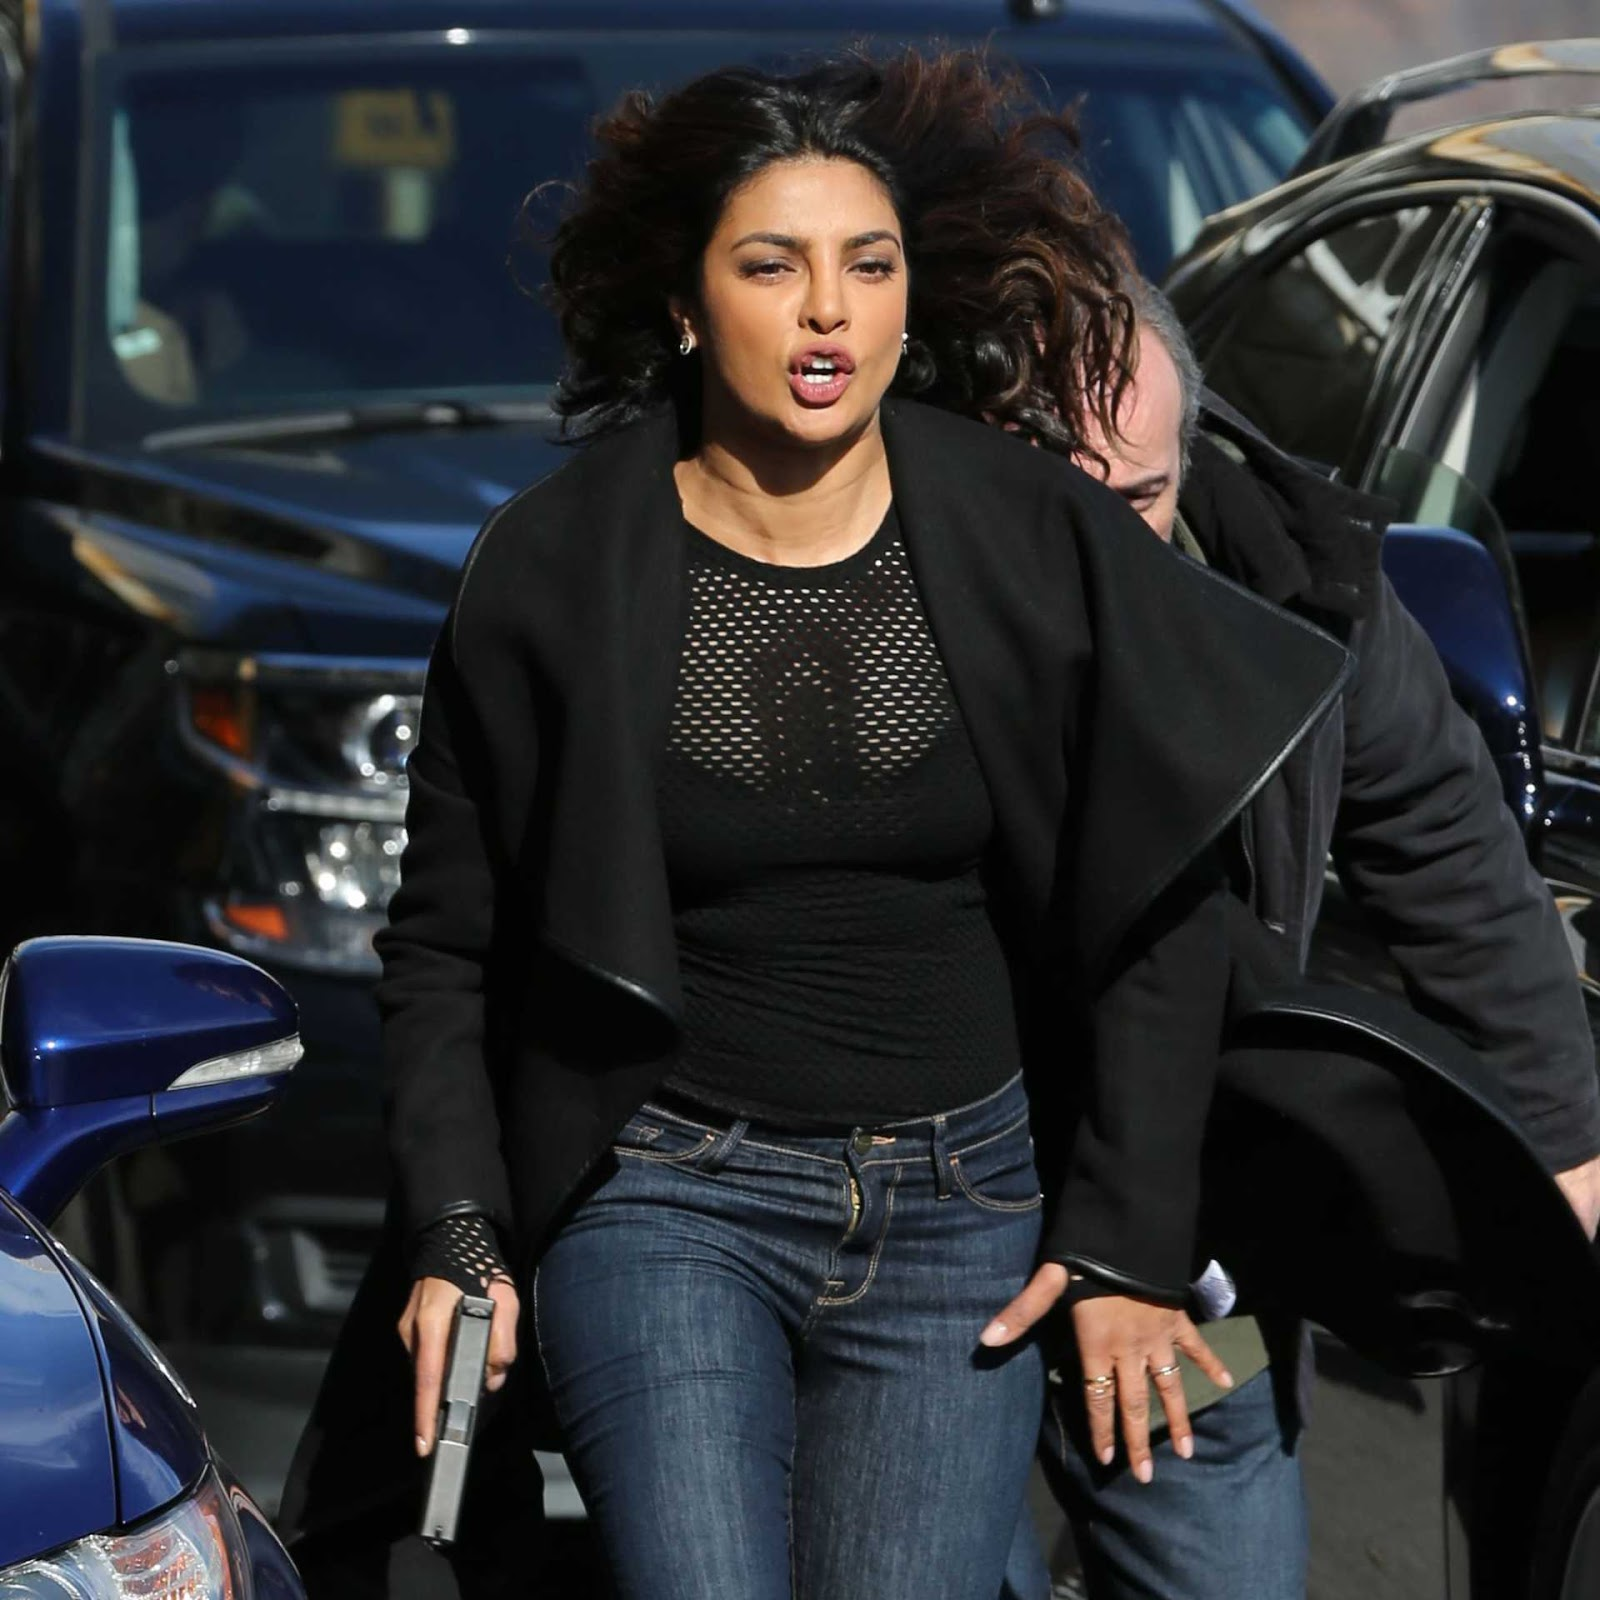 Priyanka Chopra On The Set Of Quantico Season 3 - Hot -8610